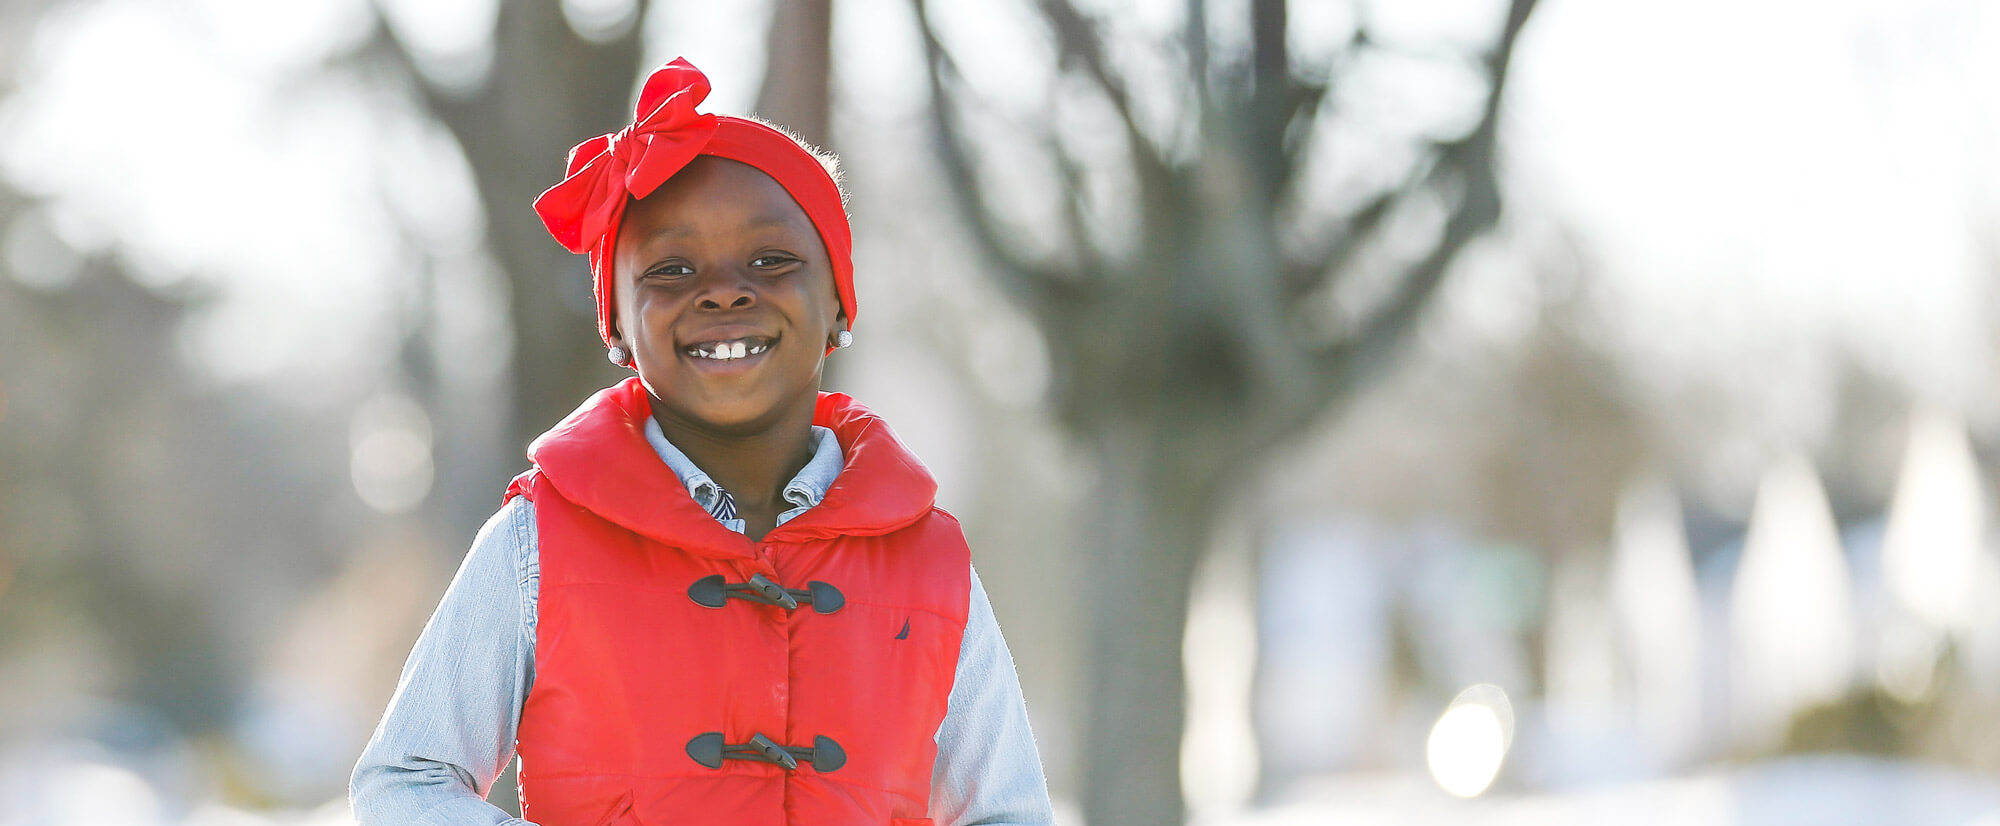 Little girl in a red vest smiling